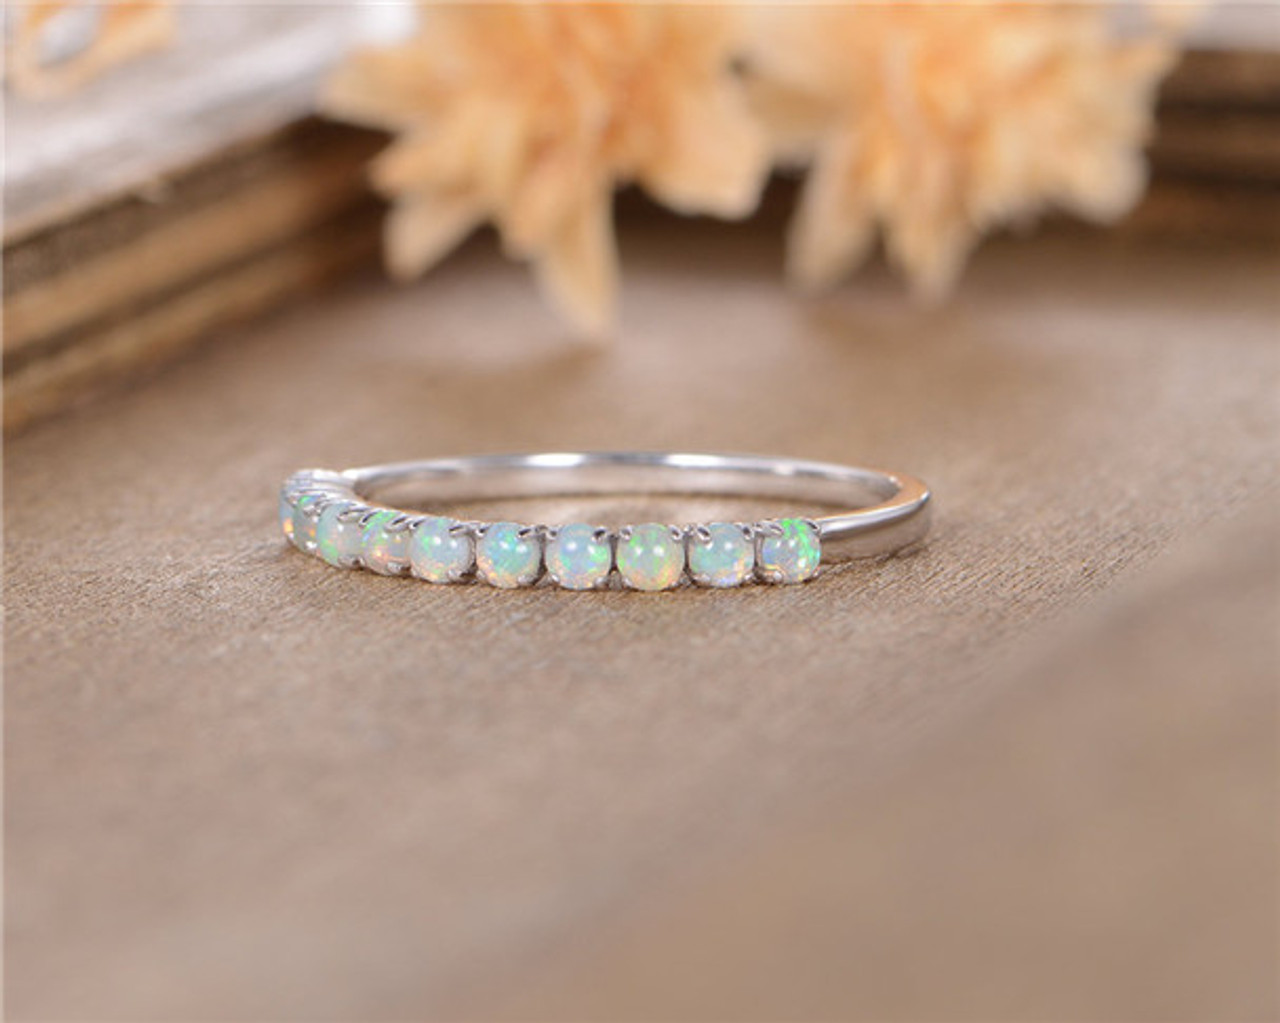 Opal Wedding Band.Opal Wedding Band Women White Gold October Birthstone Anniversary Gift Promise Ring